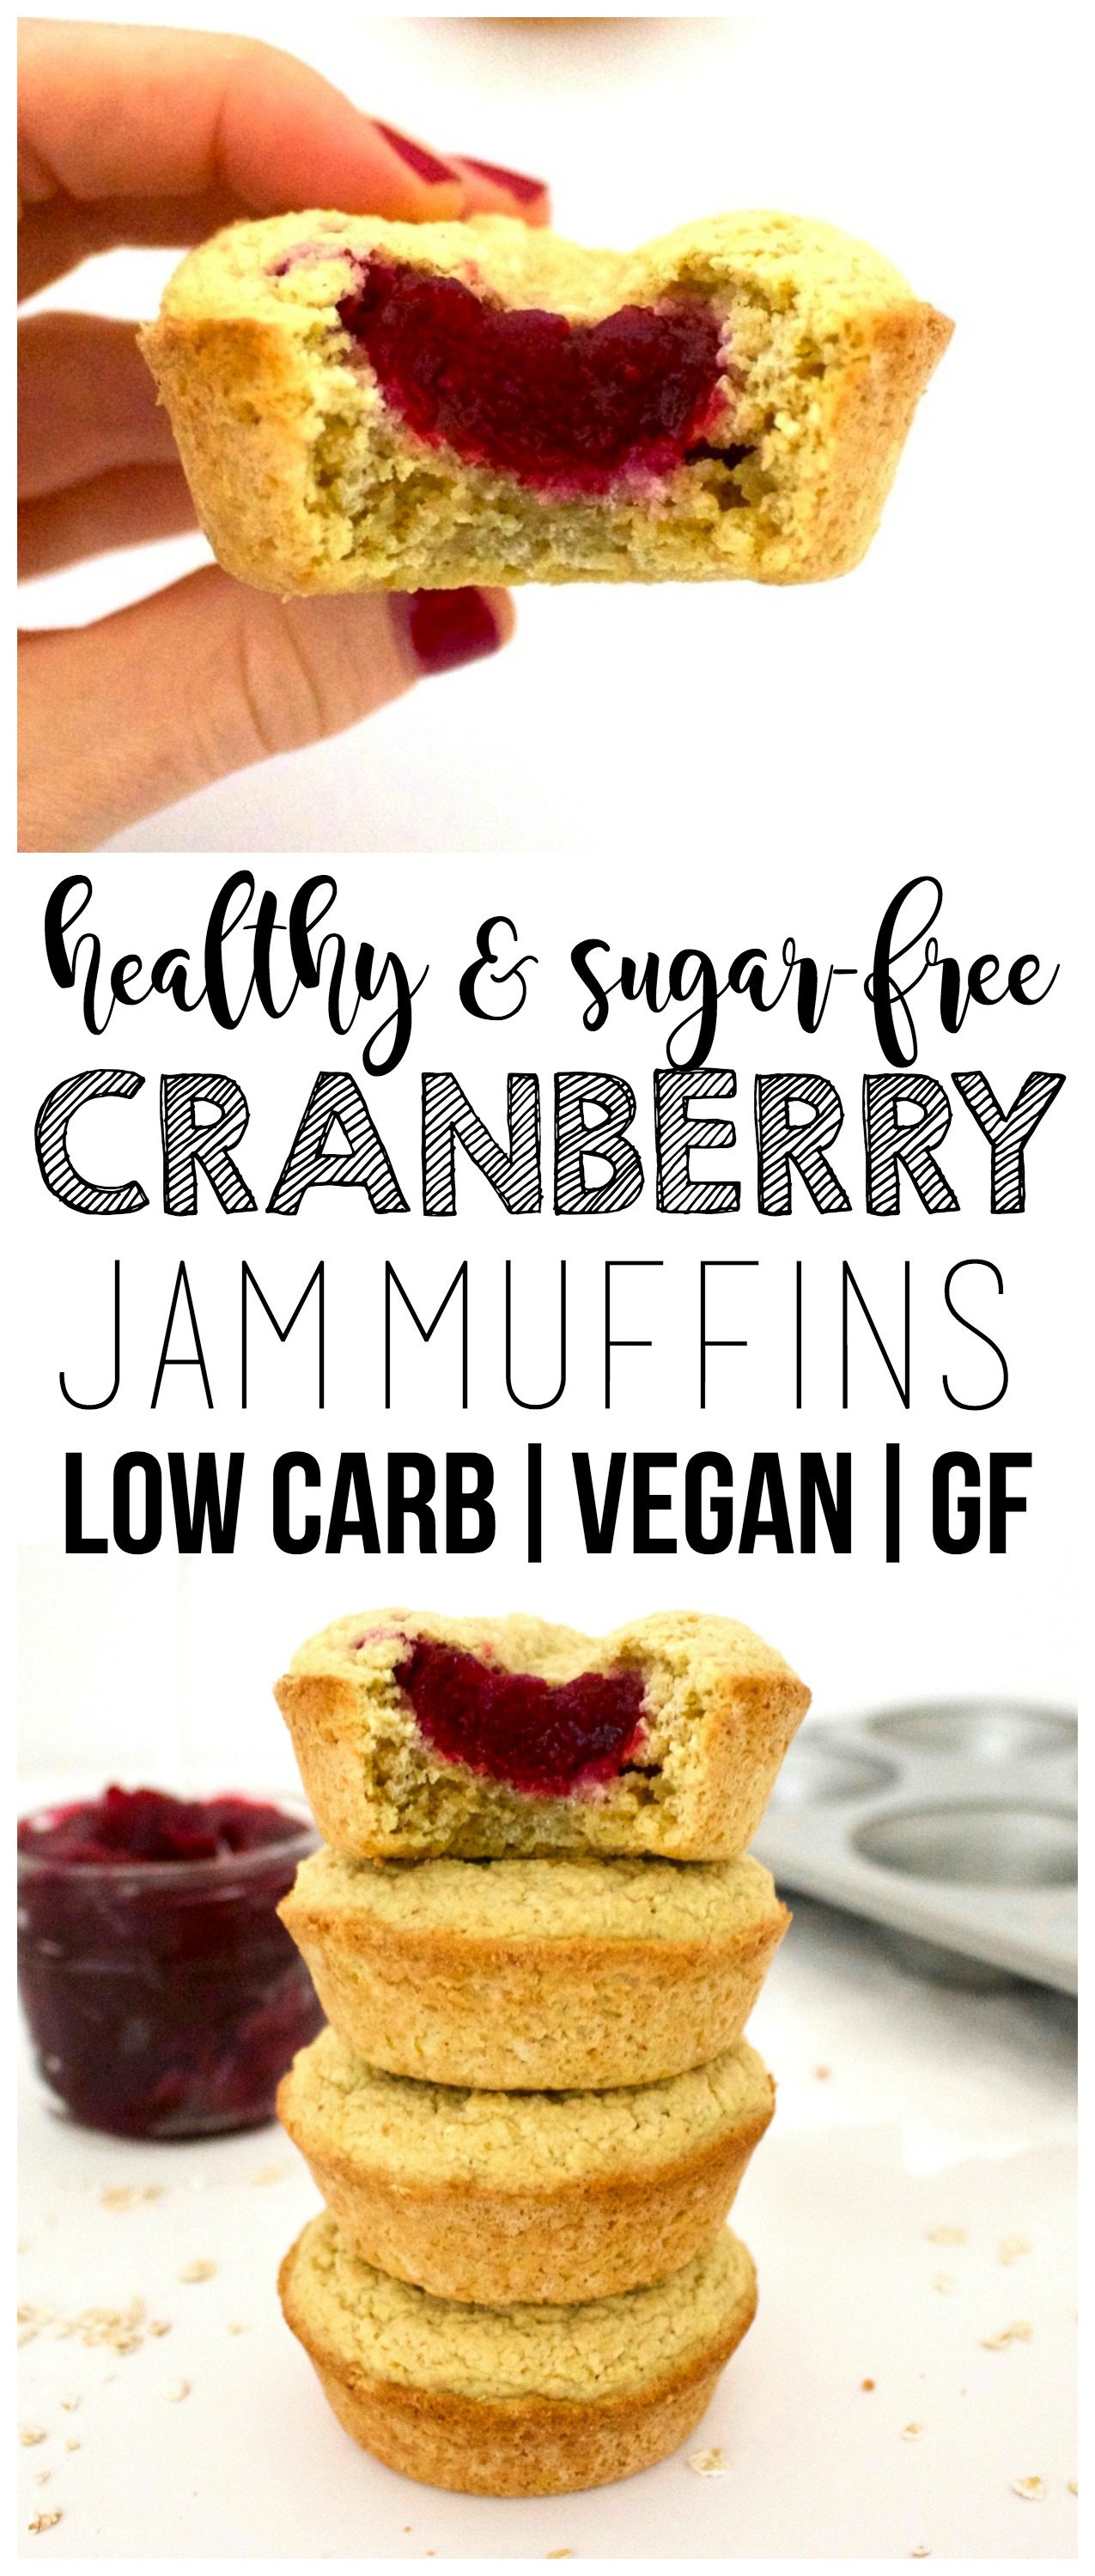 Youwill LOVE these super easy Vegan Cranberry Jam Muffins! They are sooo delicious - gluten-free, low-carb, low-fat, dairy-free, sugar-free, oil-free & low-calorie - only 65 calories each!